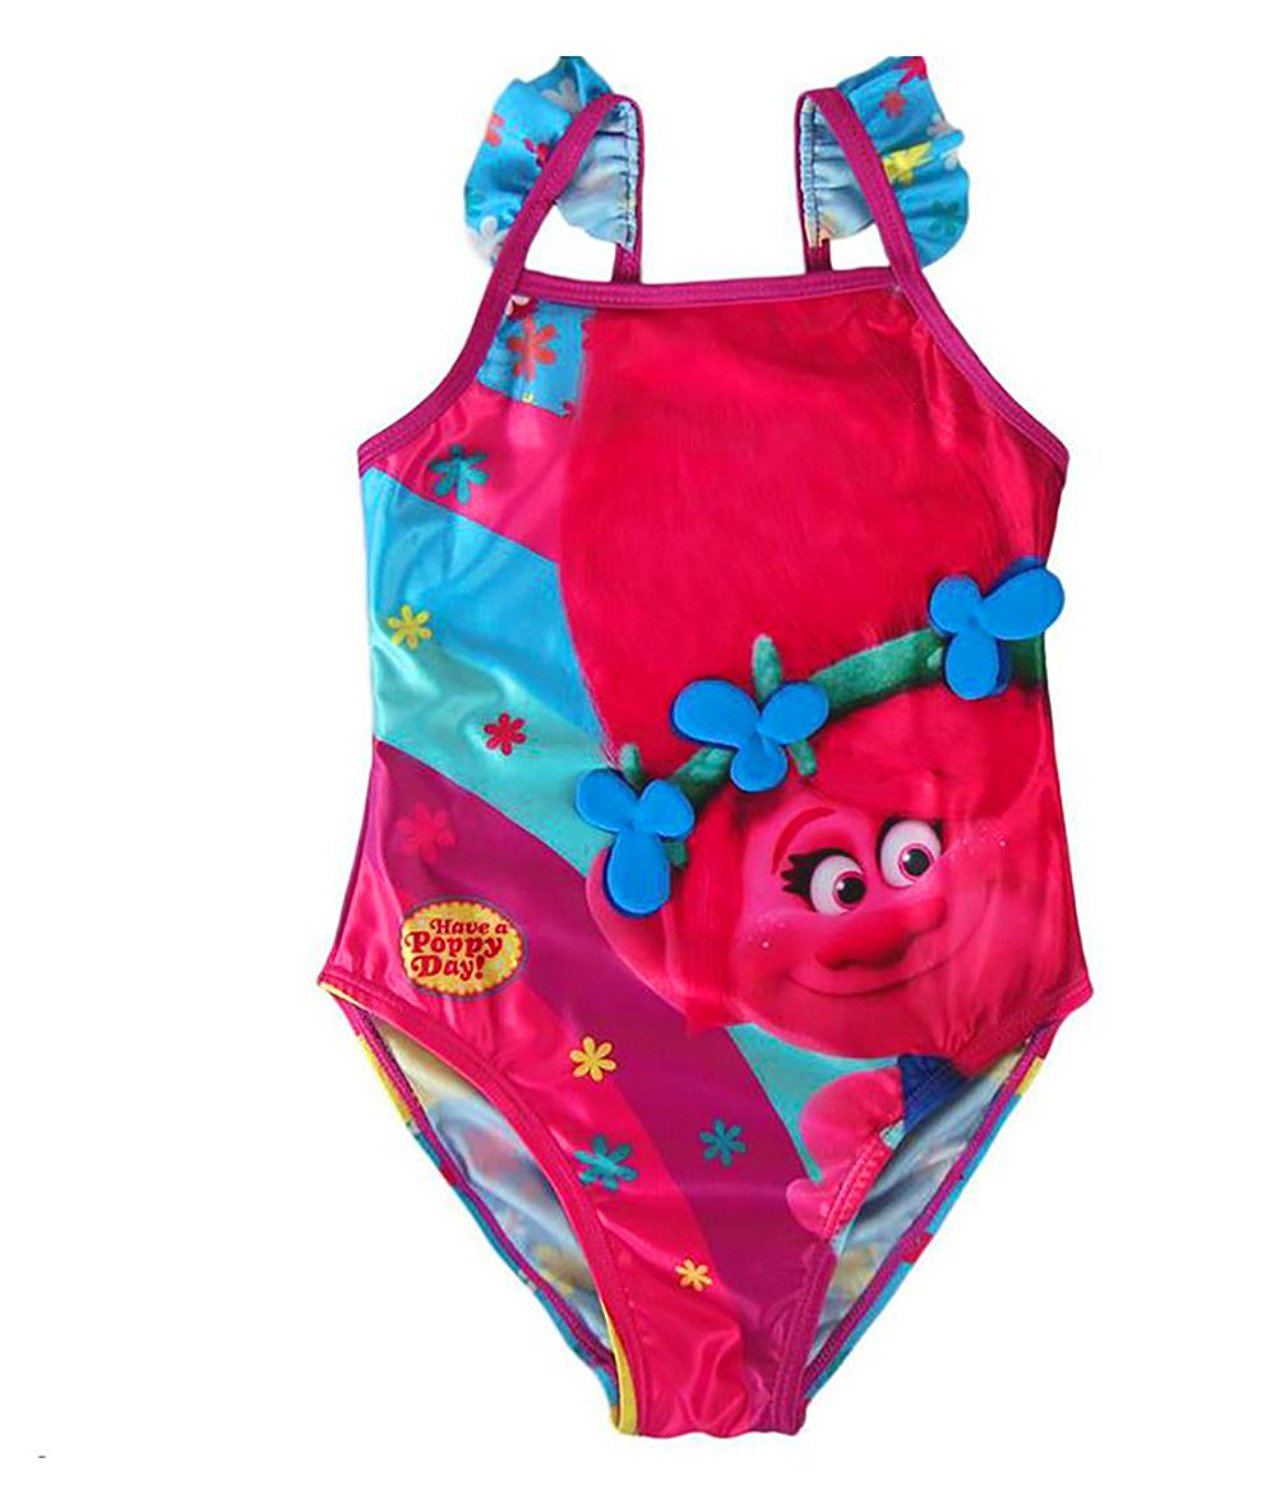 2ea962c6b6a Get Quotations · Trolle DreamWorks Kids Swimsuit Trolls|Poppy Rainbow  Swimwear Official Licenced,5 Sizes(3